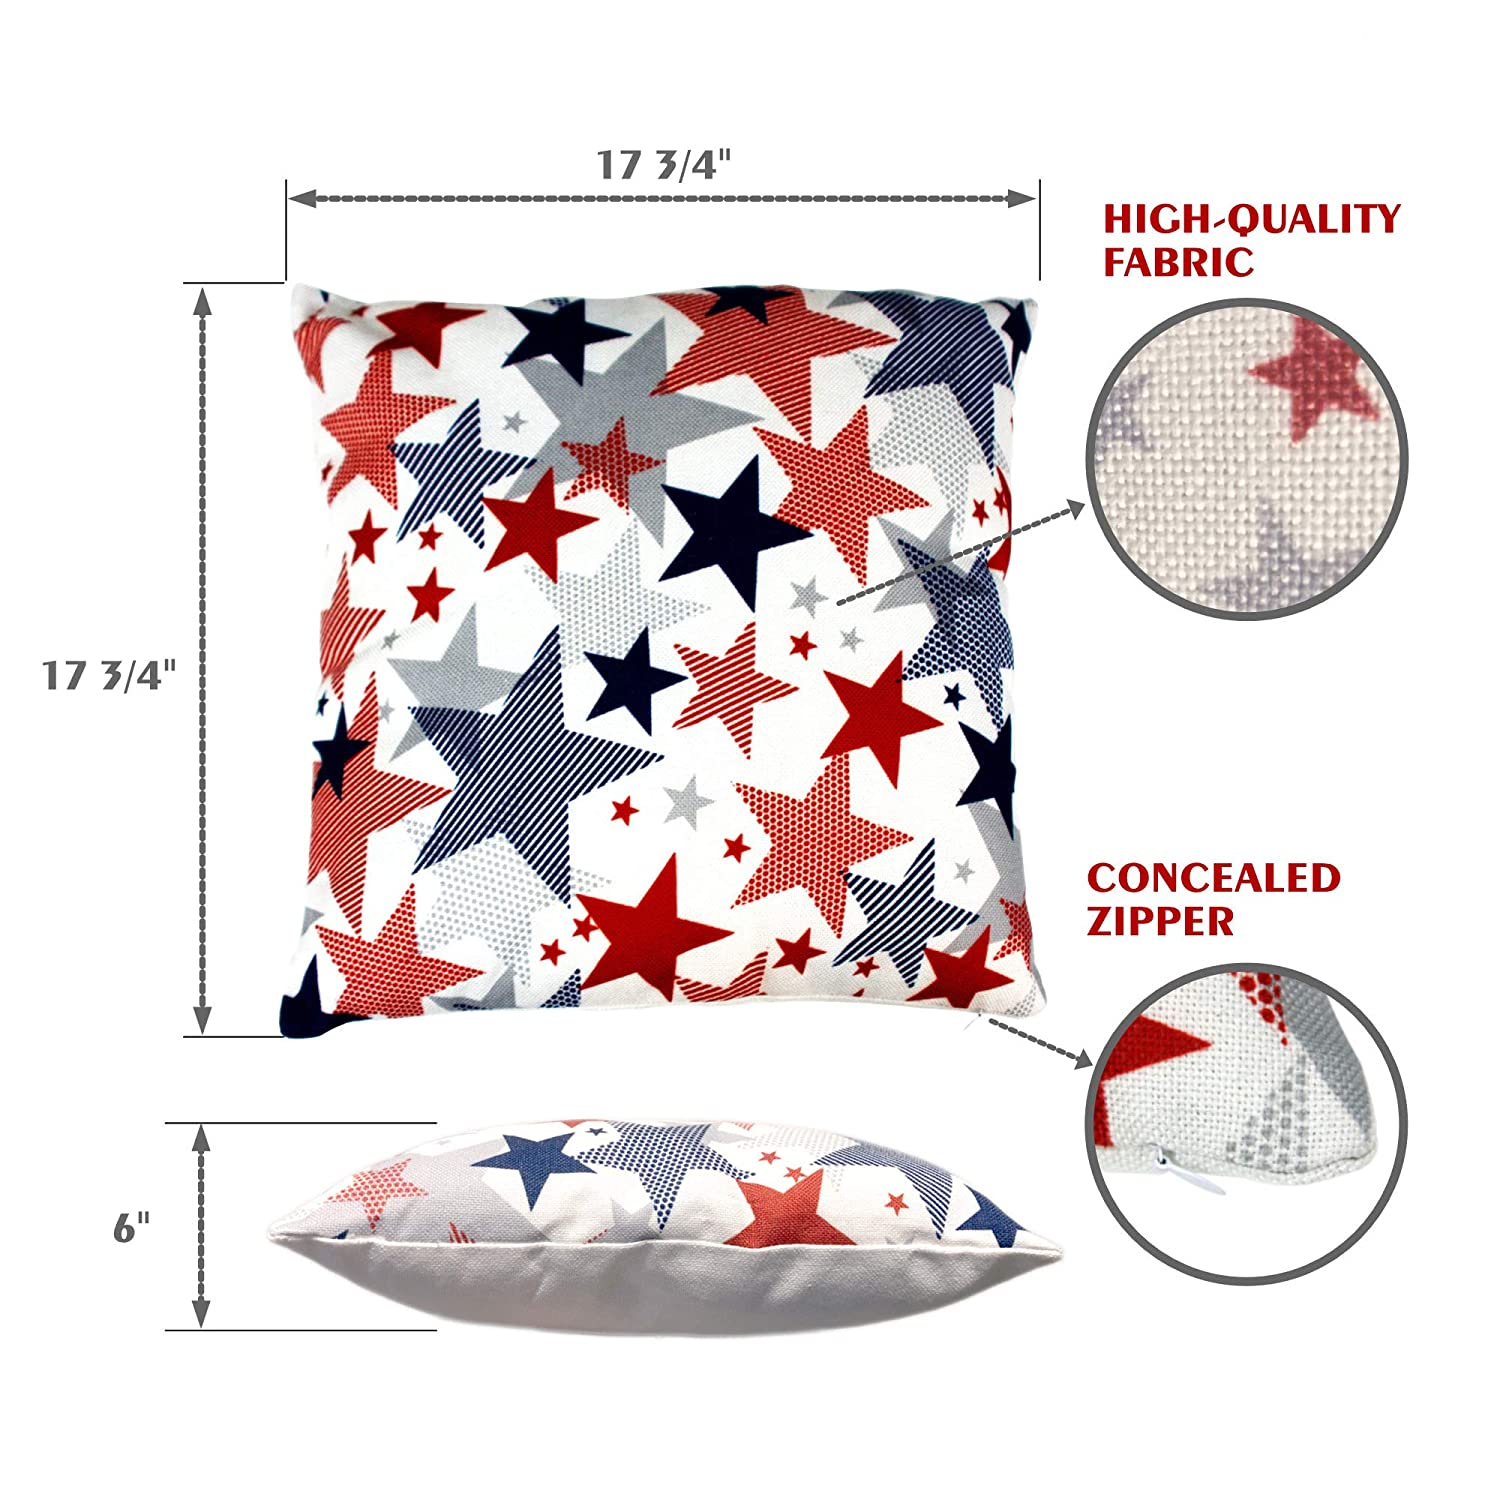 Image 4 of Holiday Pillow Covers, Set of 2